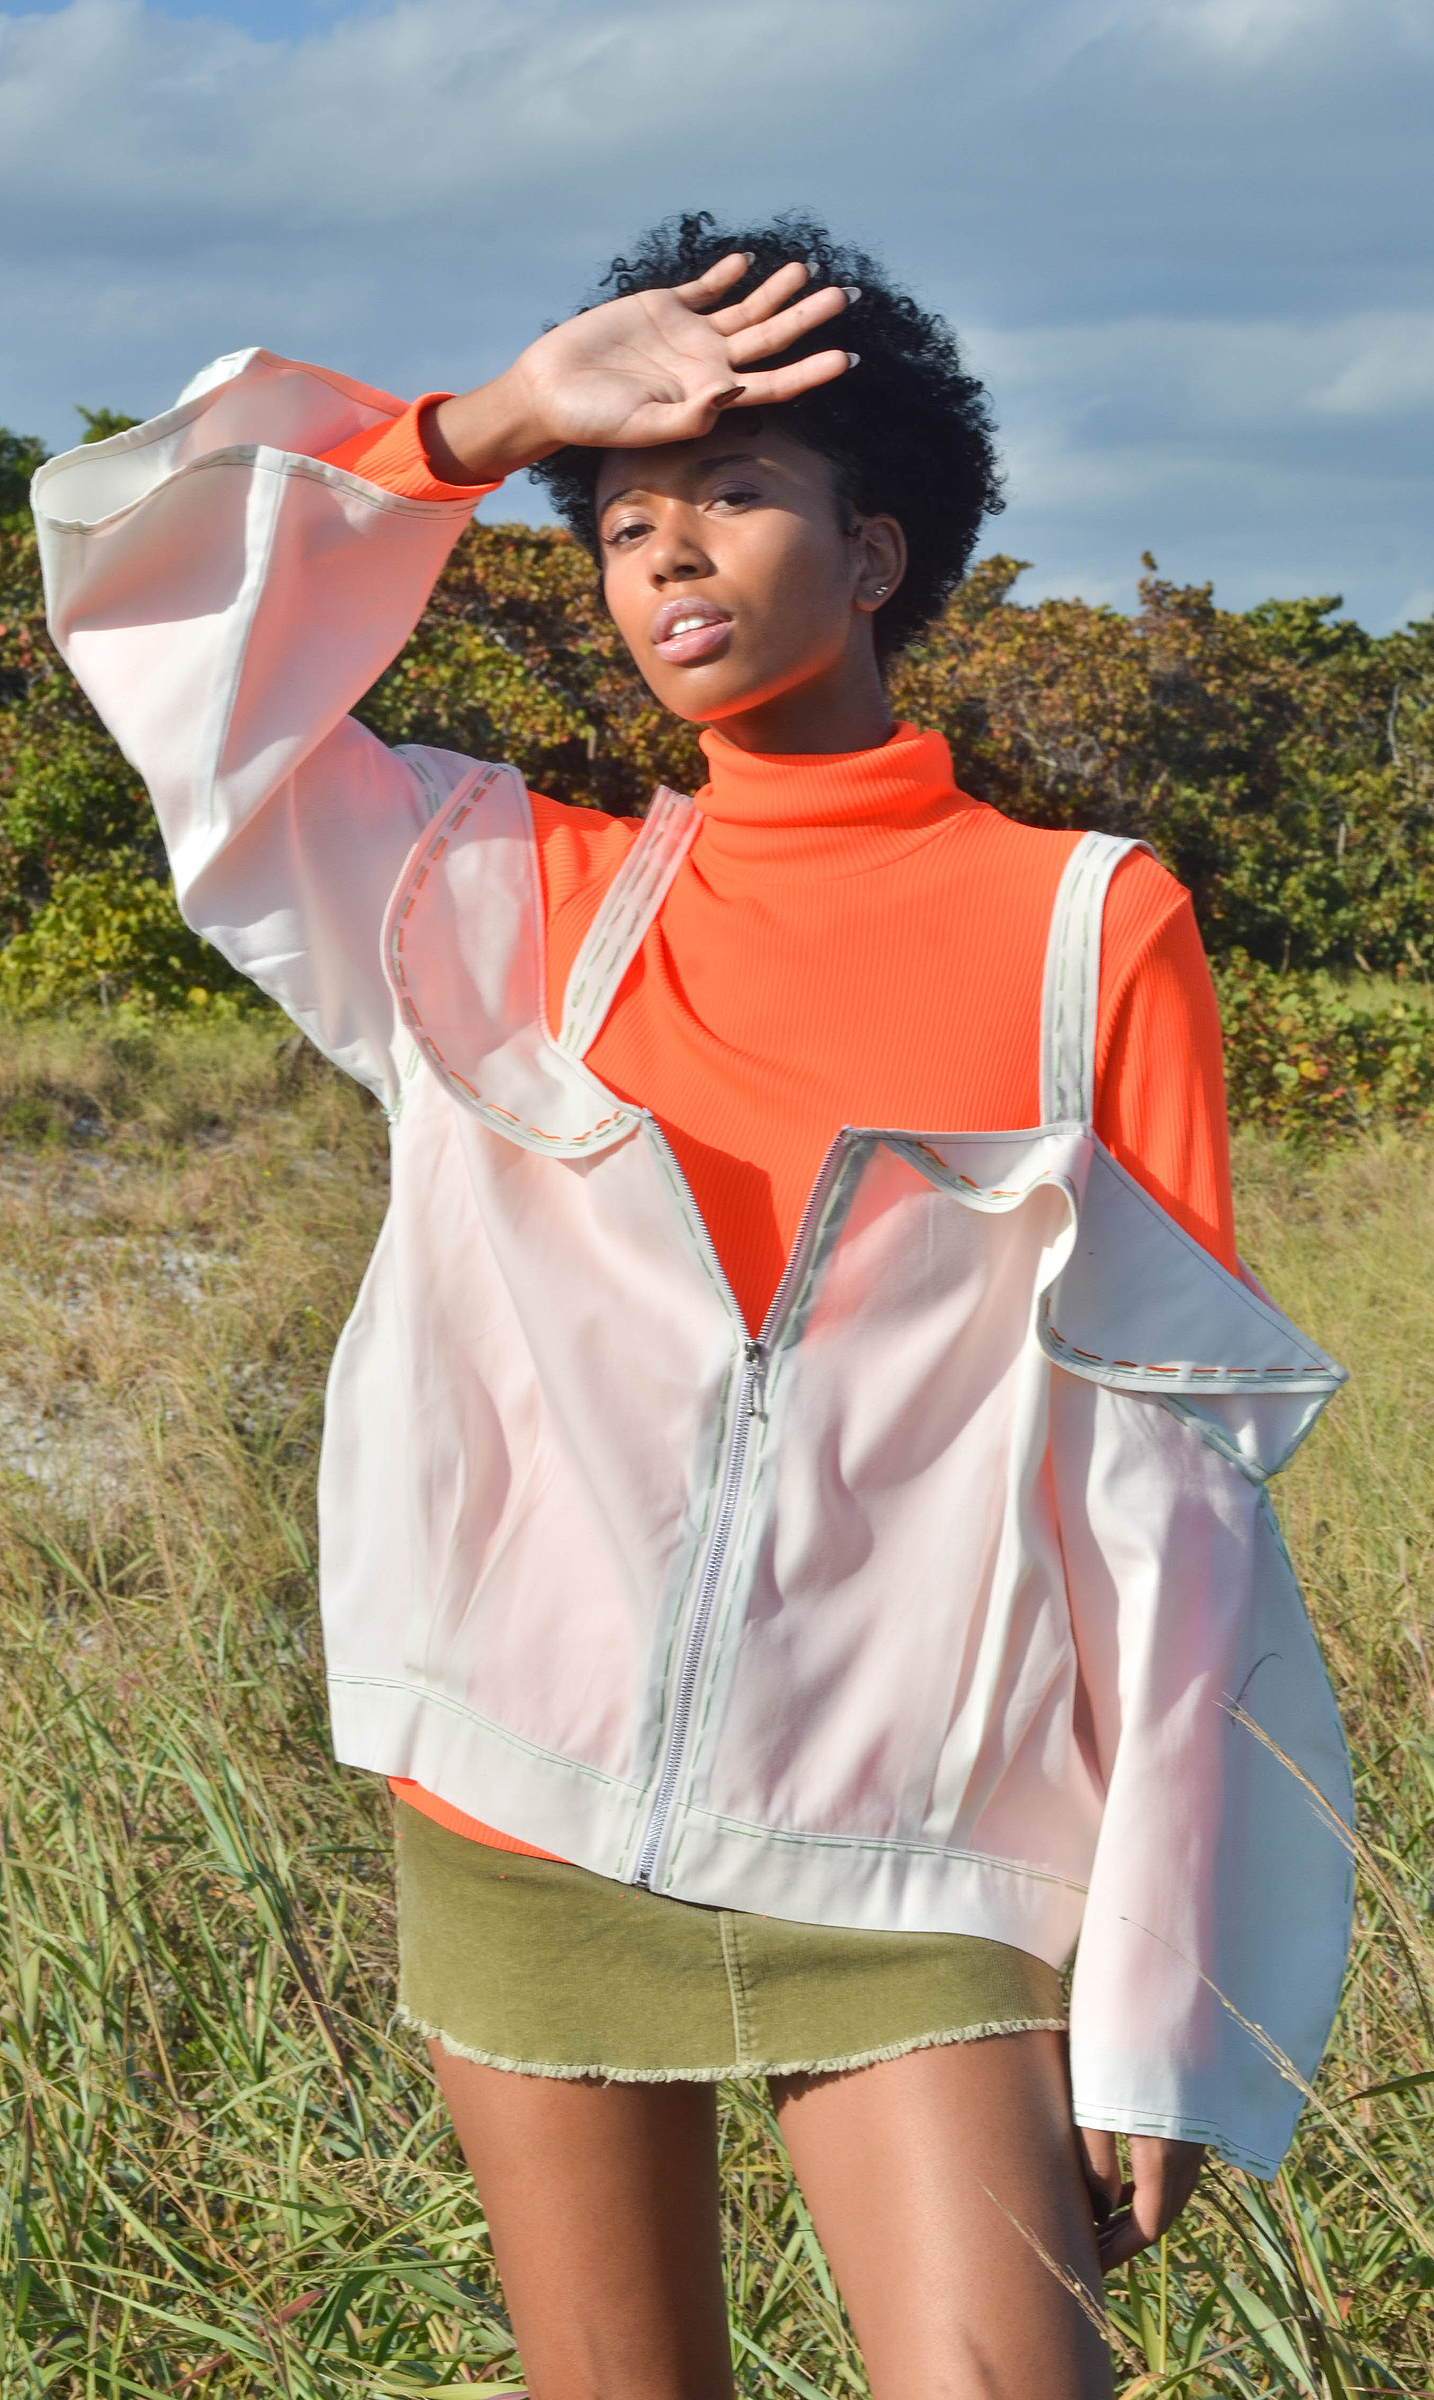 The  Off The Shoulder Jacket  is not only fashionable but it's fun. The orange and green top stitching adds an artistic flare and can be stylishly worn dressy or casual.